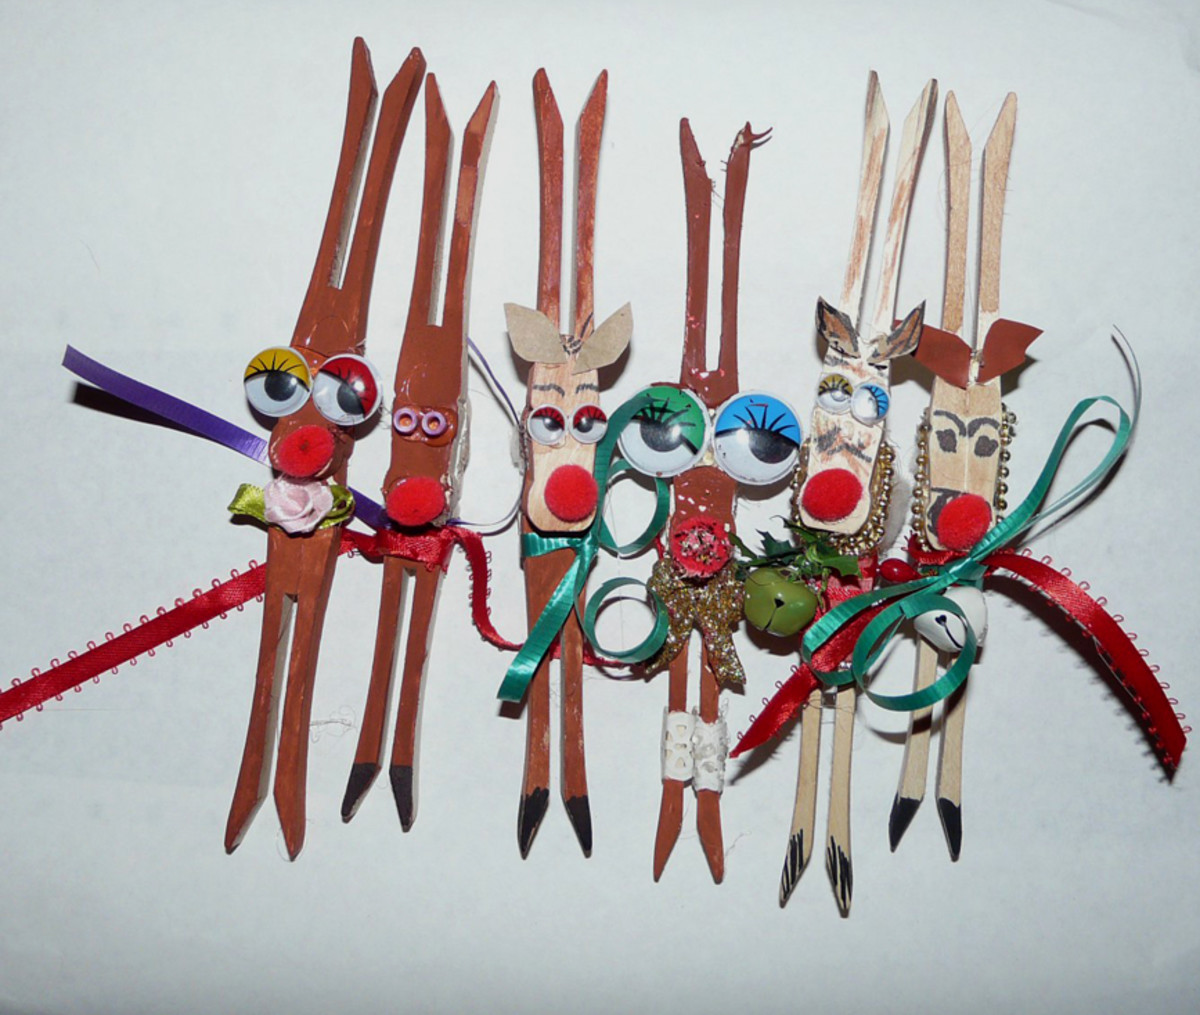 Clothespin reindeer decorated